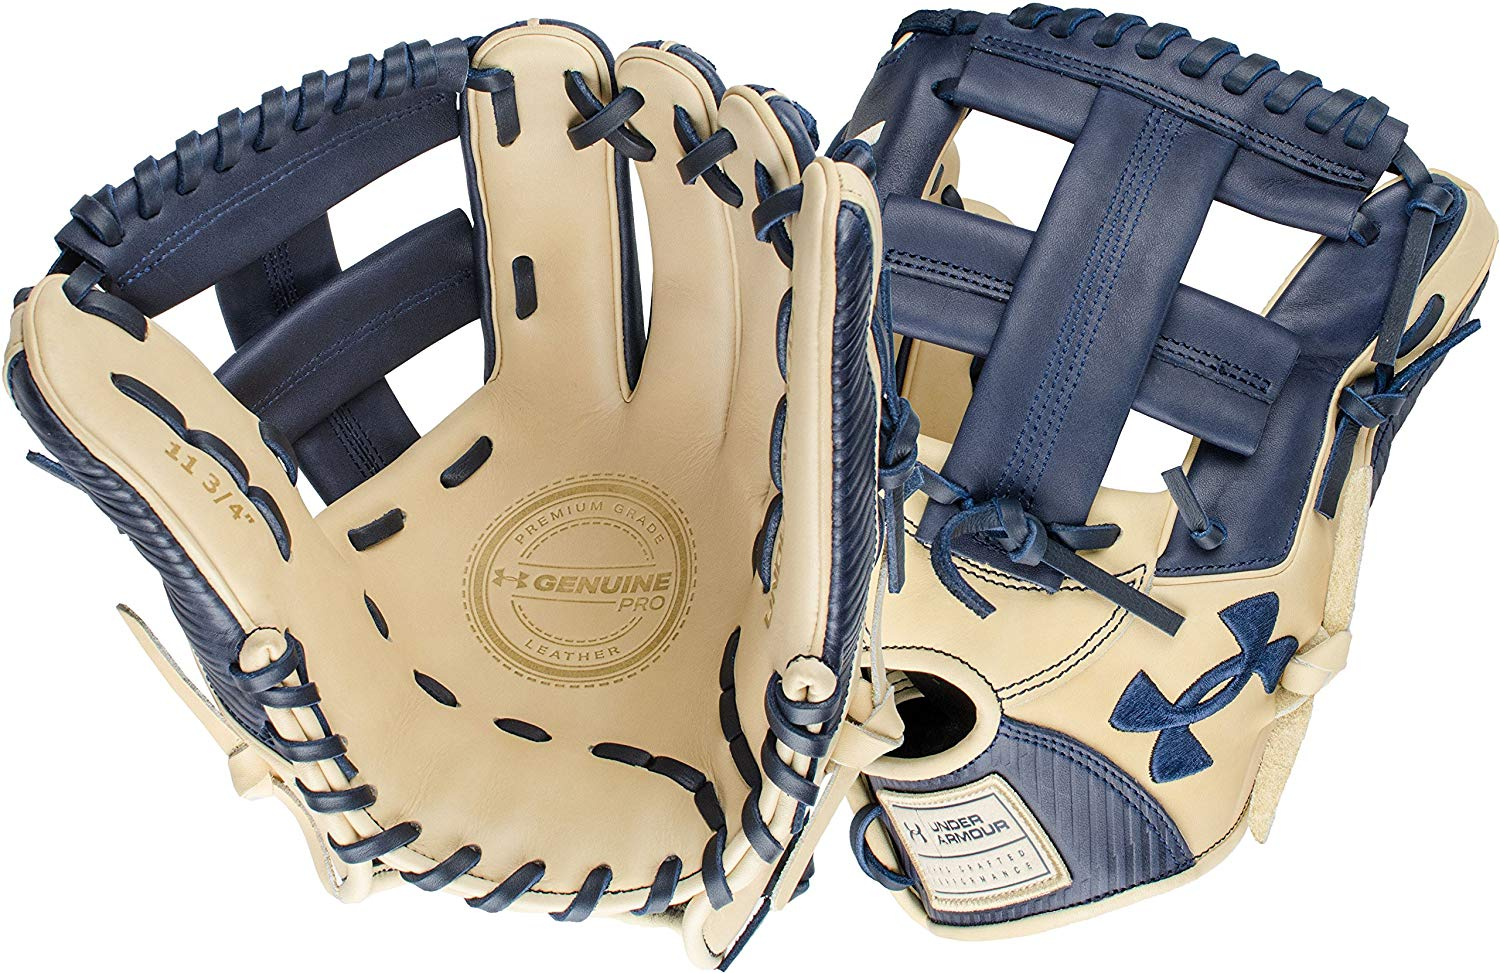 under-armour-genuine-pro-11-75-single-post-web-baseball-navy-glove-right-hand-throw UAFGGP-1175SPNACR-RightHandThrow Under 029343046964 Navy and cream design Right hand throw 11.5 inches infield model